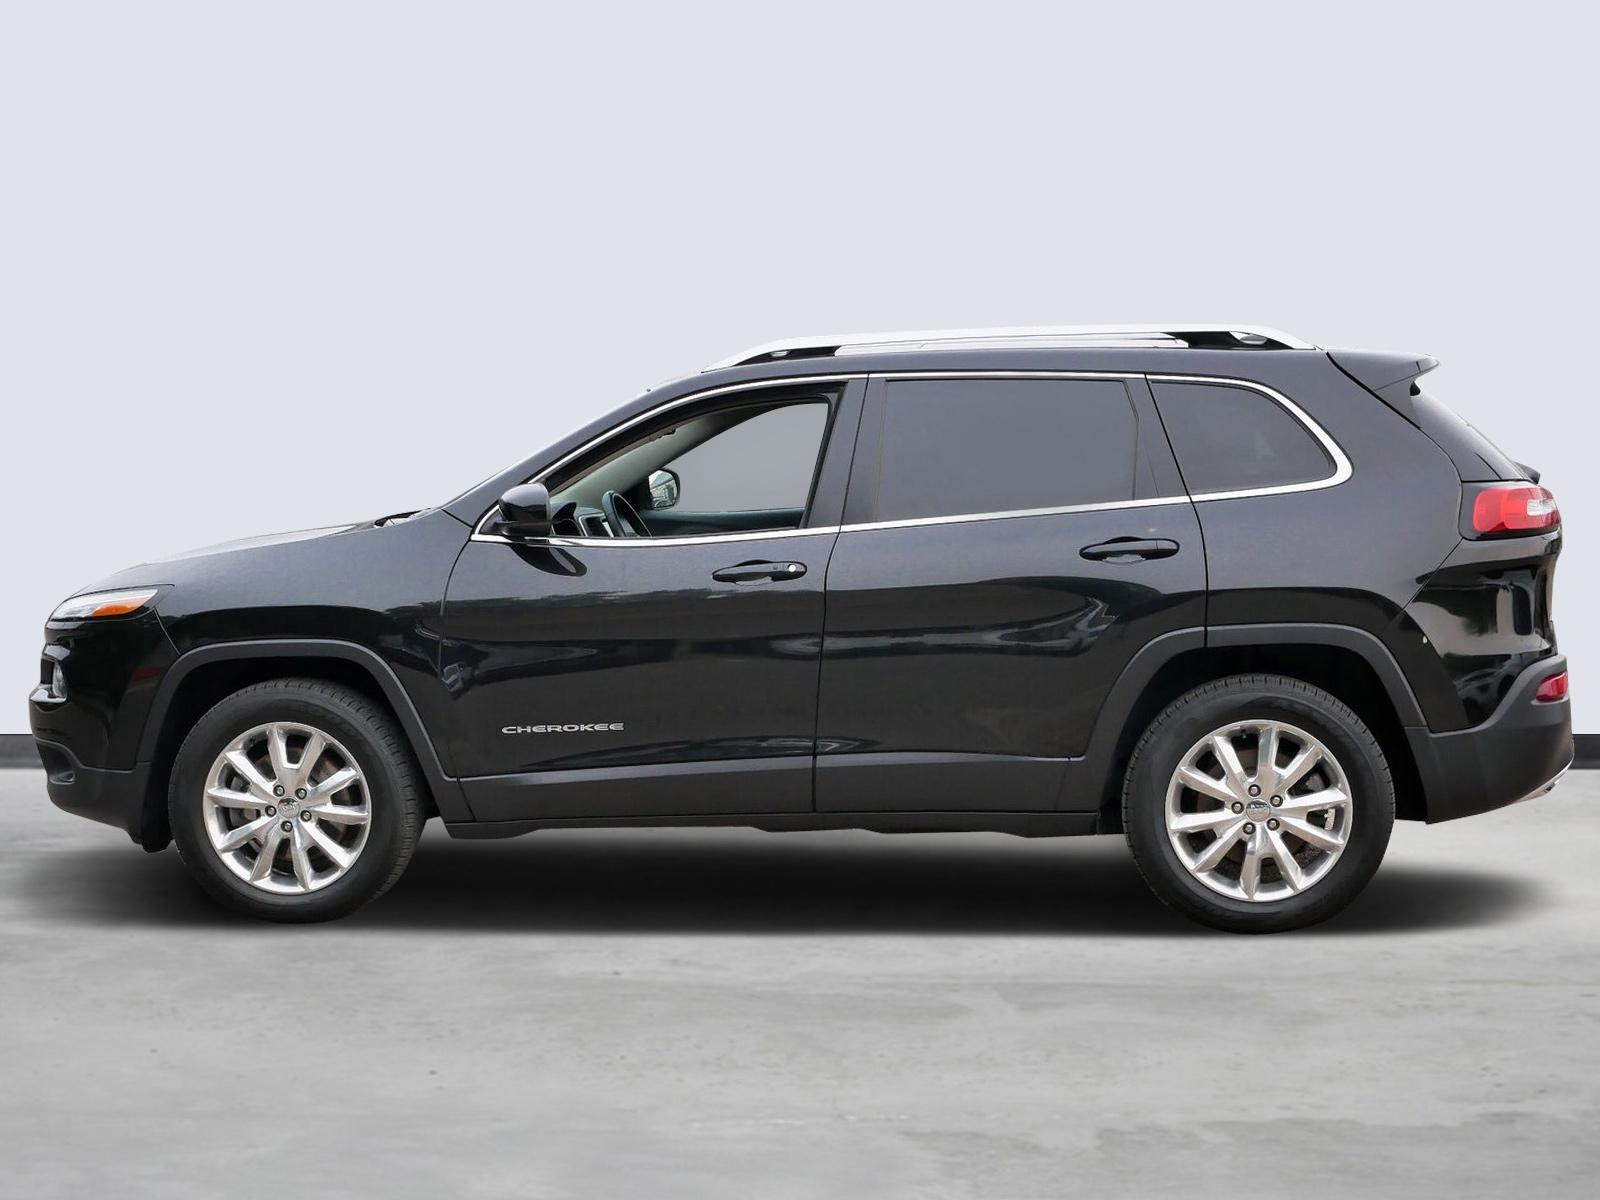 Used 2016 Jeep Cherokee Limited with VIN 1C4PJMDS9GW122605 for sale in Minneapolis, Minnesota